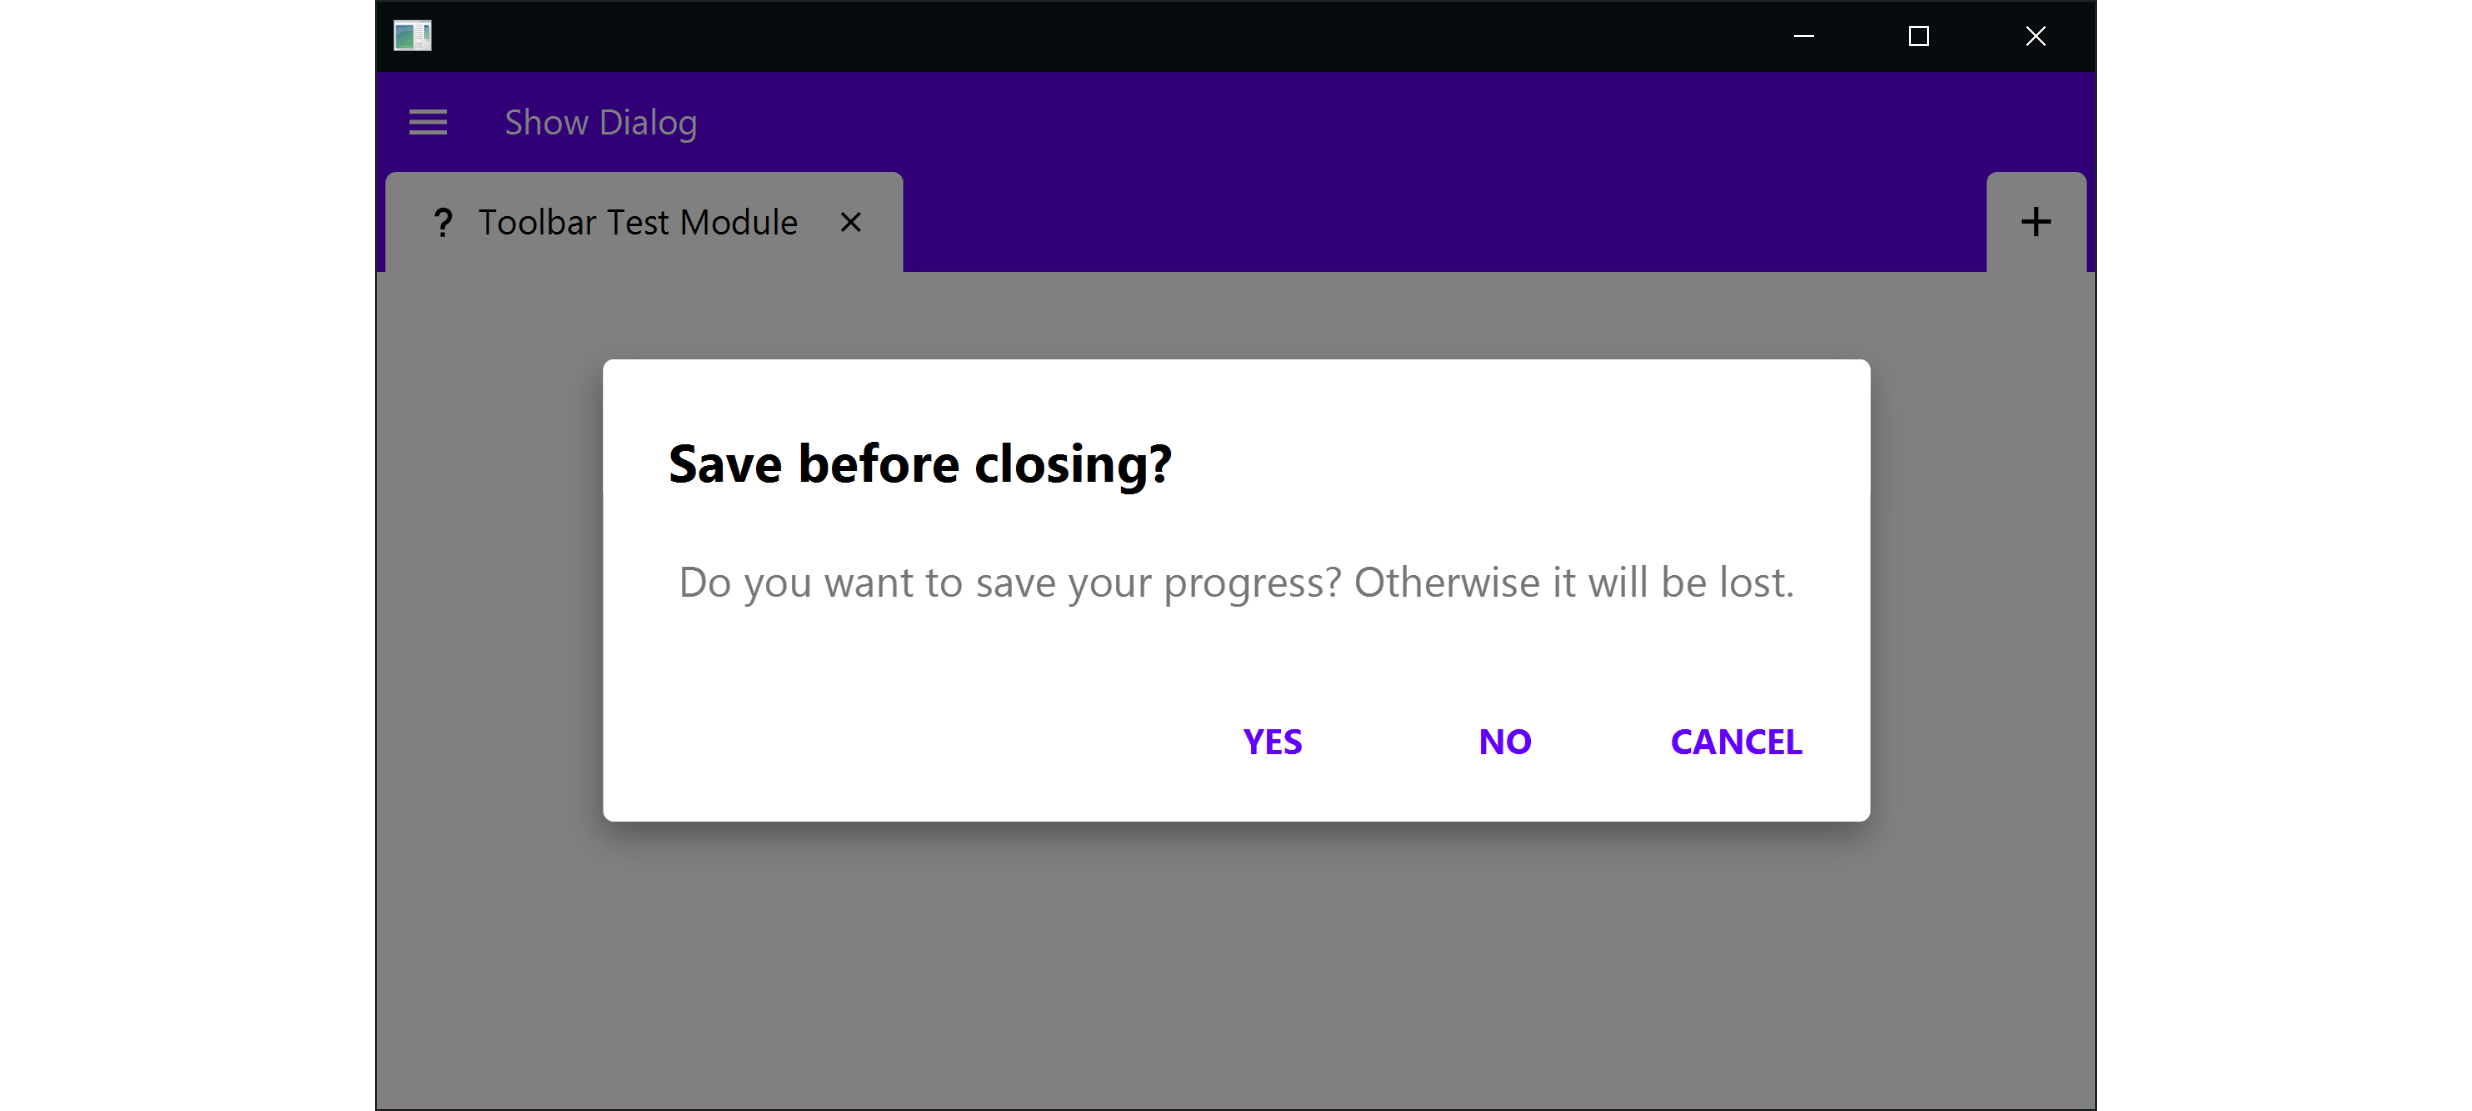 Image of a dialog which asks about saving before closing the module